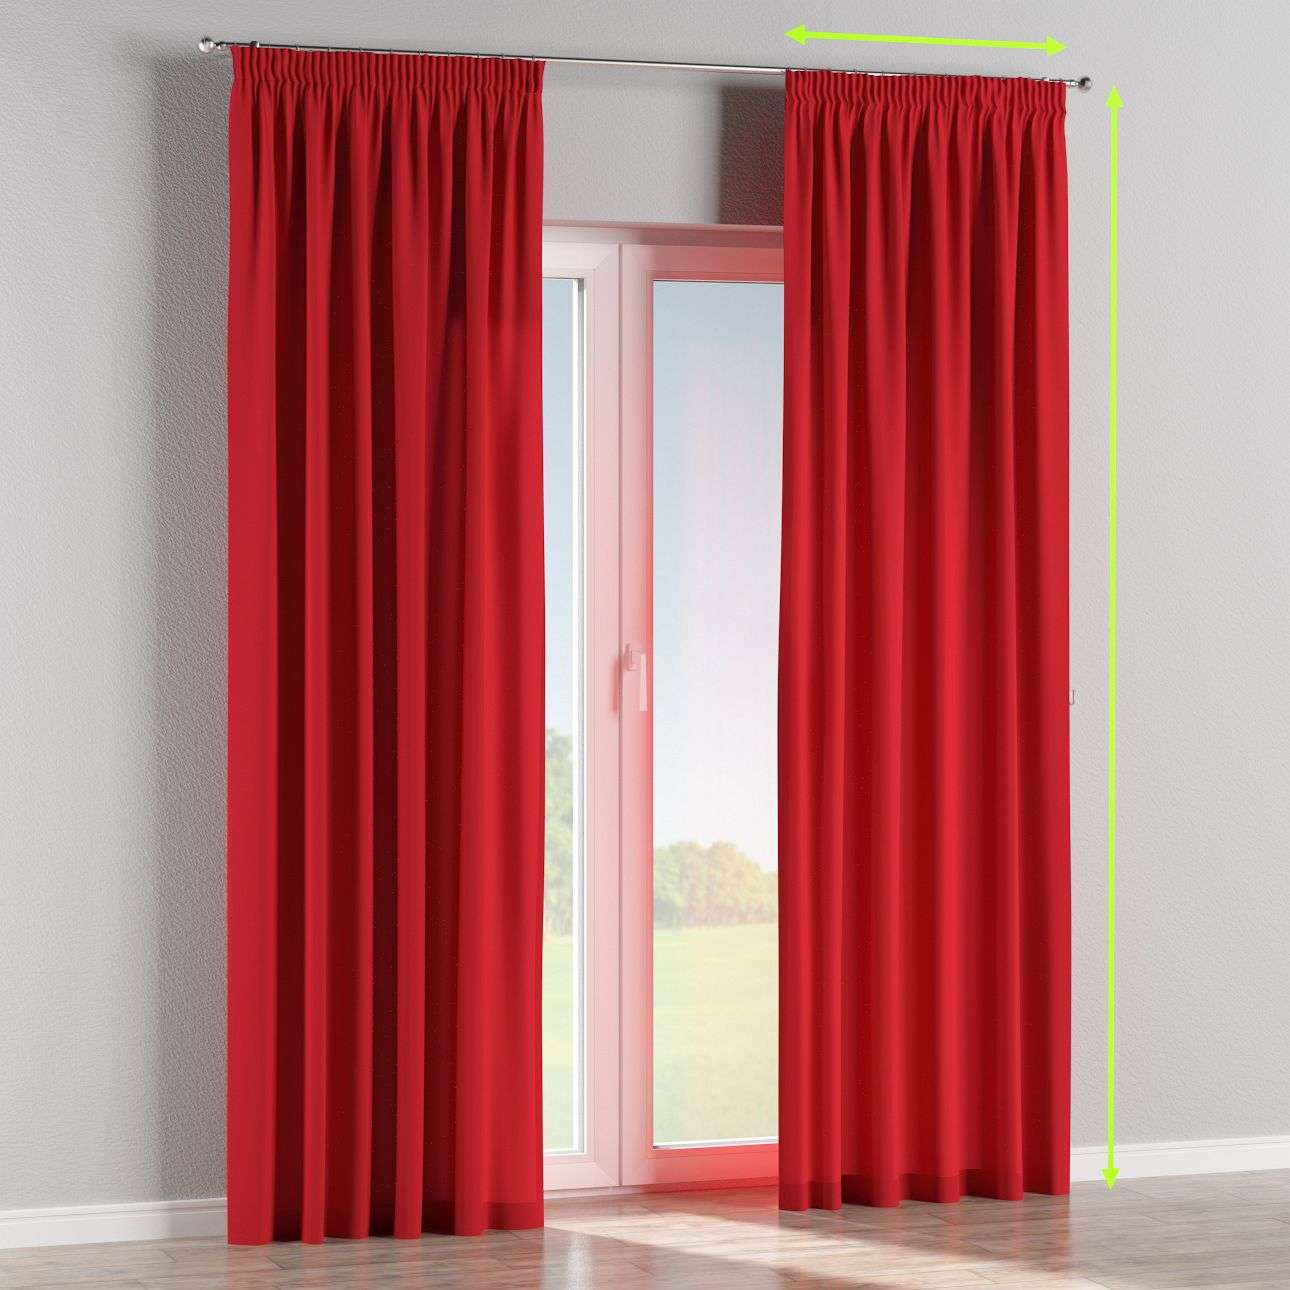 Pencil pleat lined curtains in collection Cotton Panama, fabric: 702-04